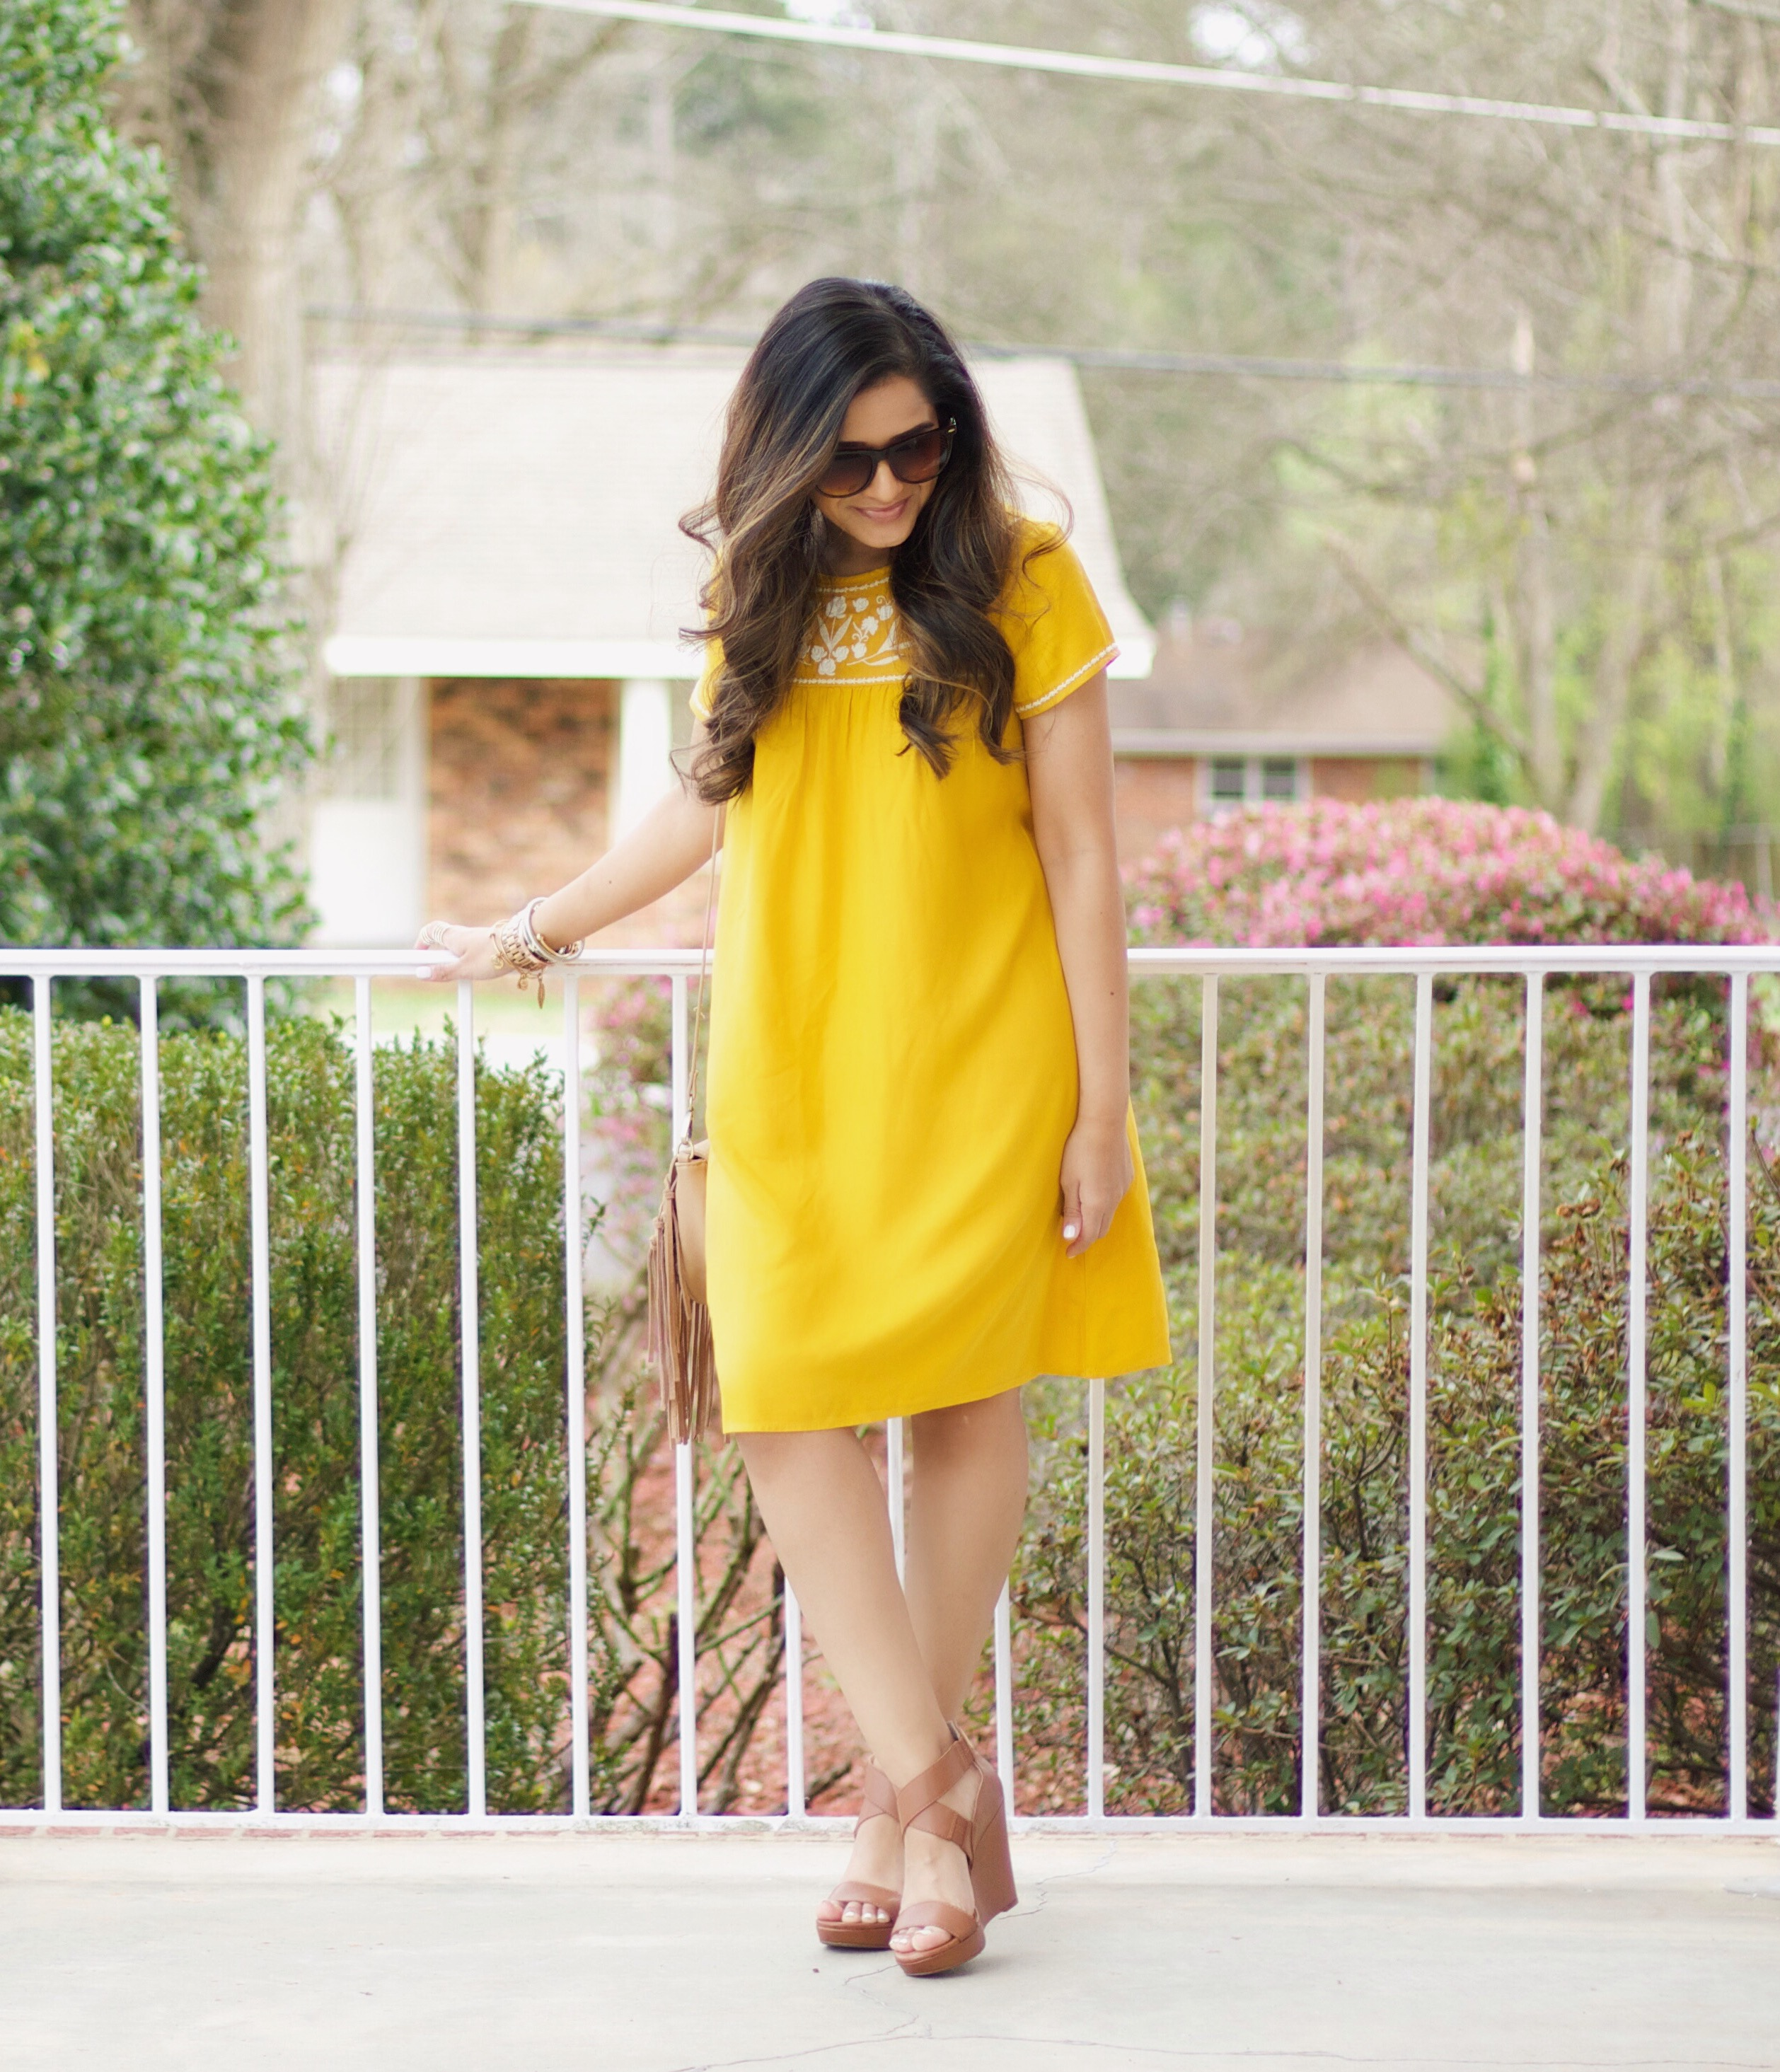 wearing bright colors for spring